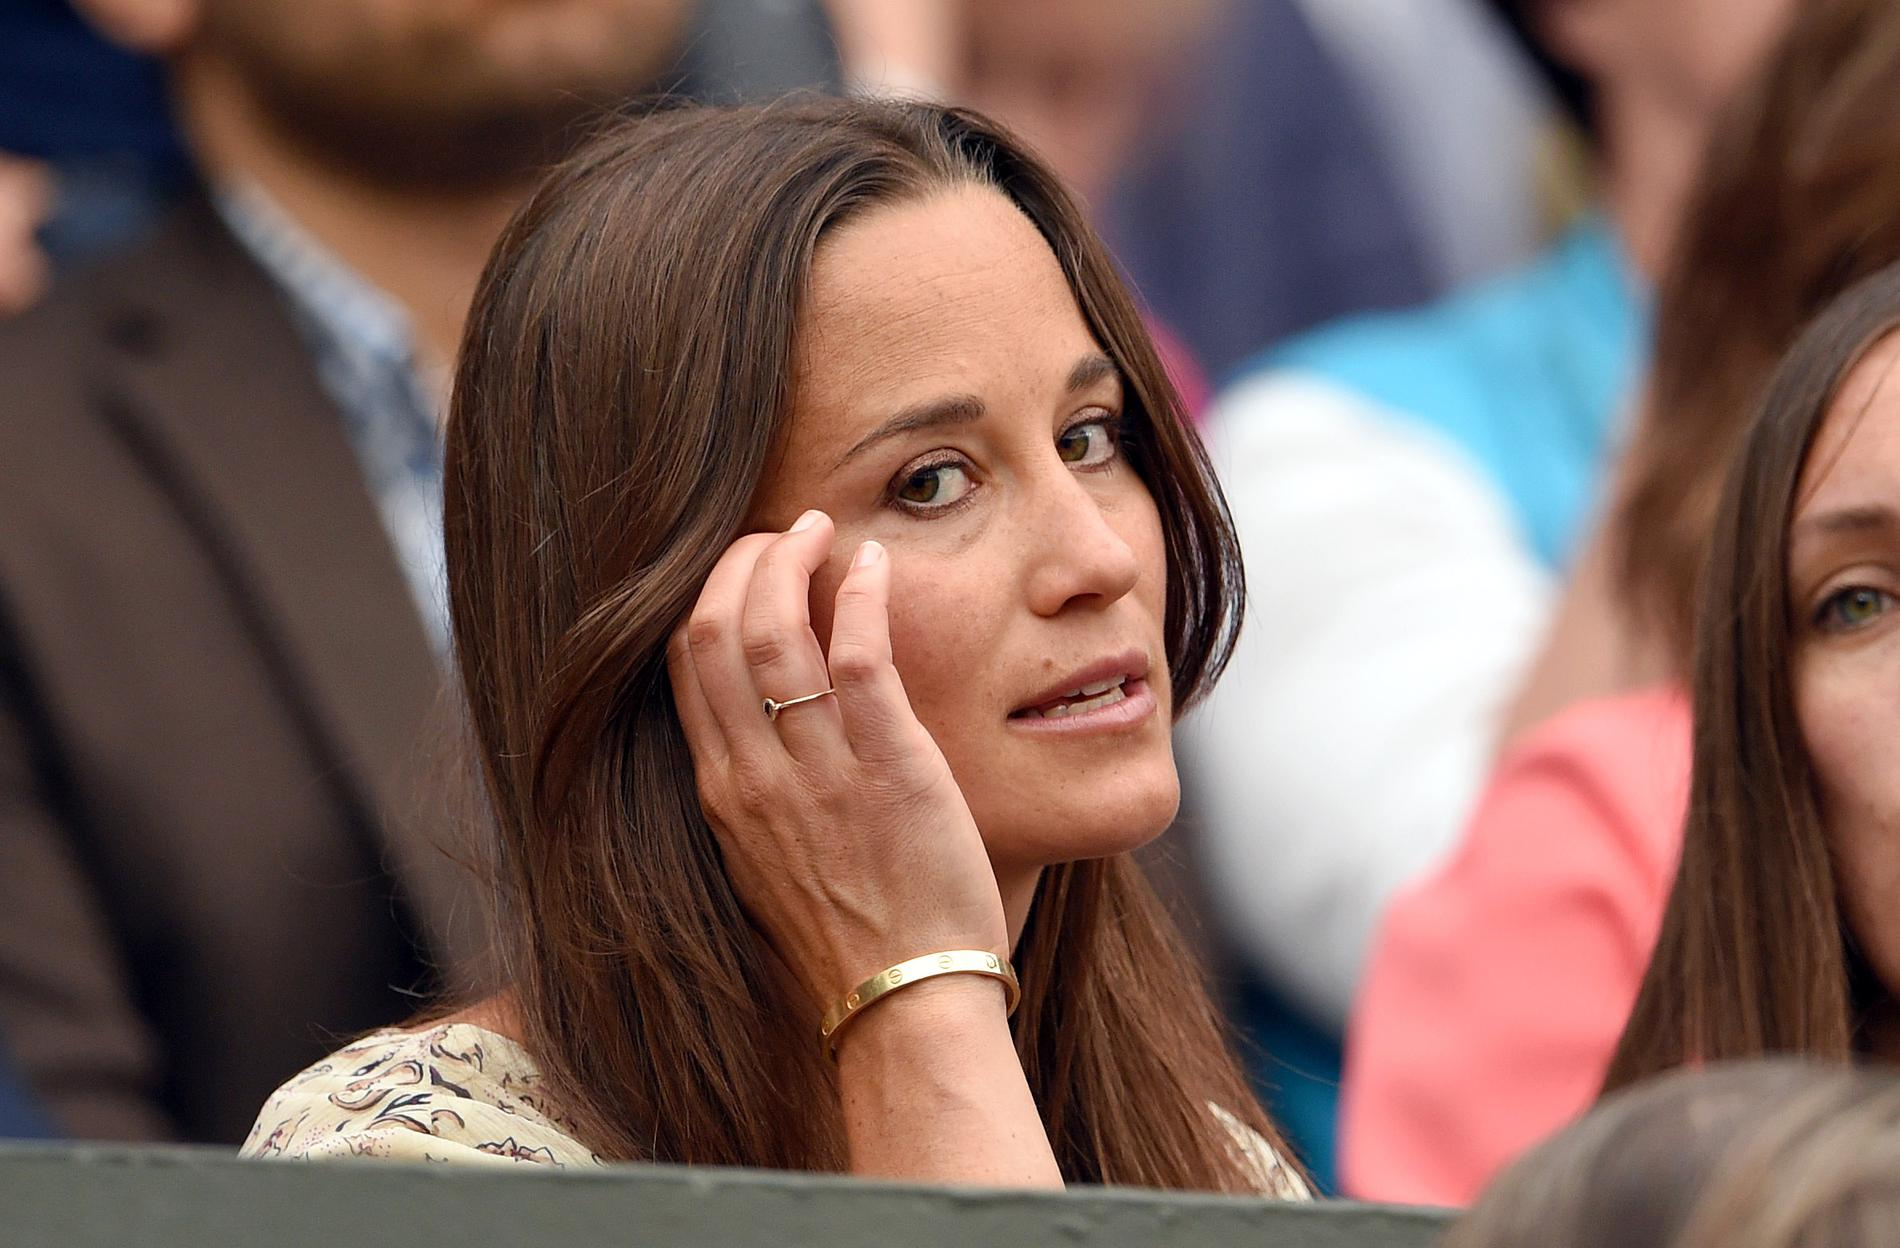 Pippa Middleton Photo C GETTY IMAGES 0196.